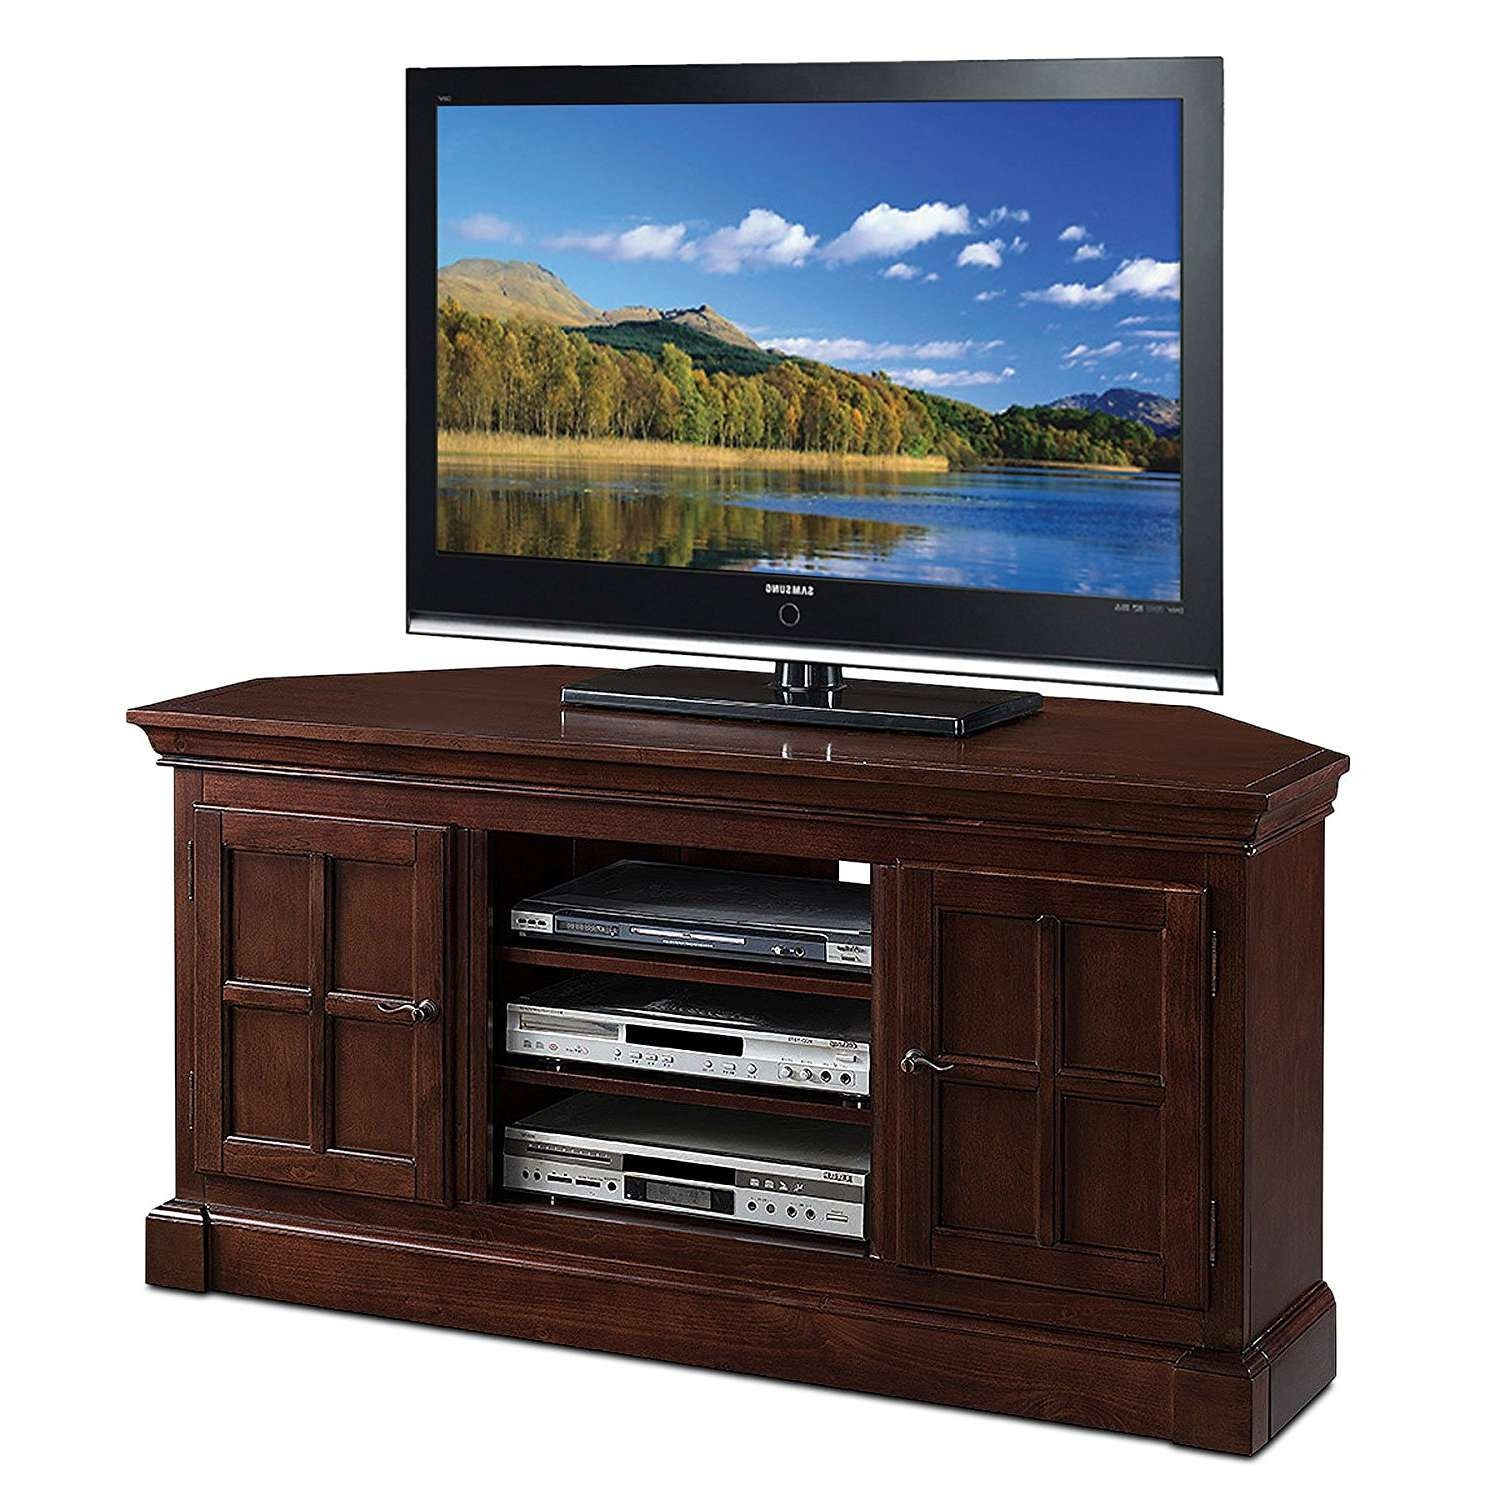 Corner Tv Stand 55 To 60 Inches Tags : 38 Remarkable Tv Stand 55 With Corner Tv Stands 40 Inch (View 2 of 20)